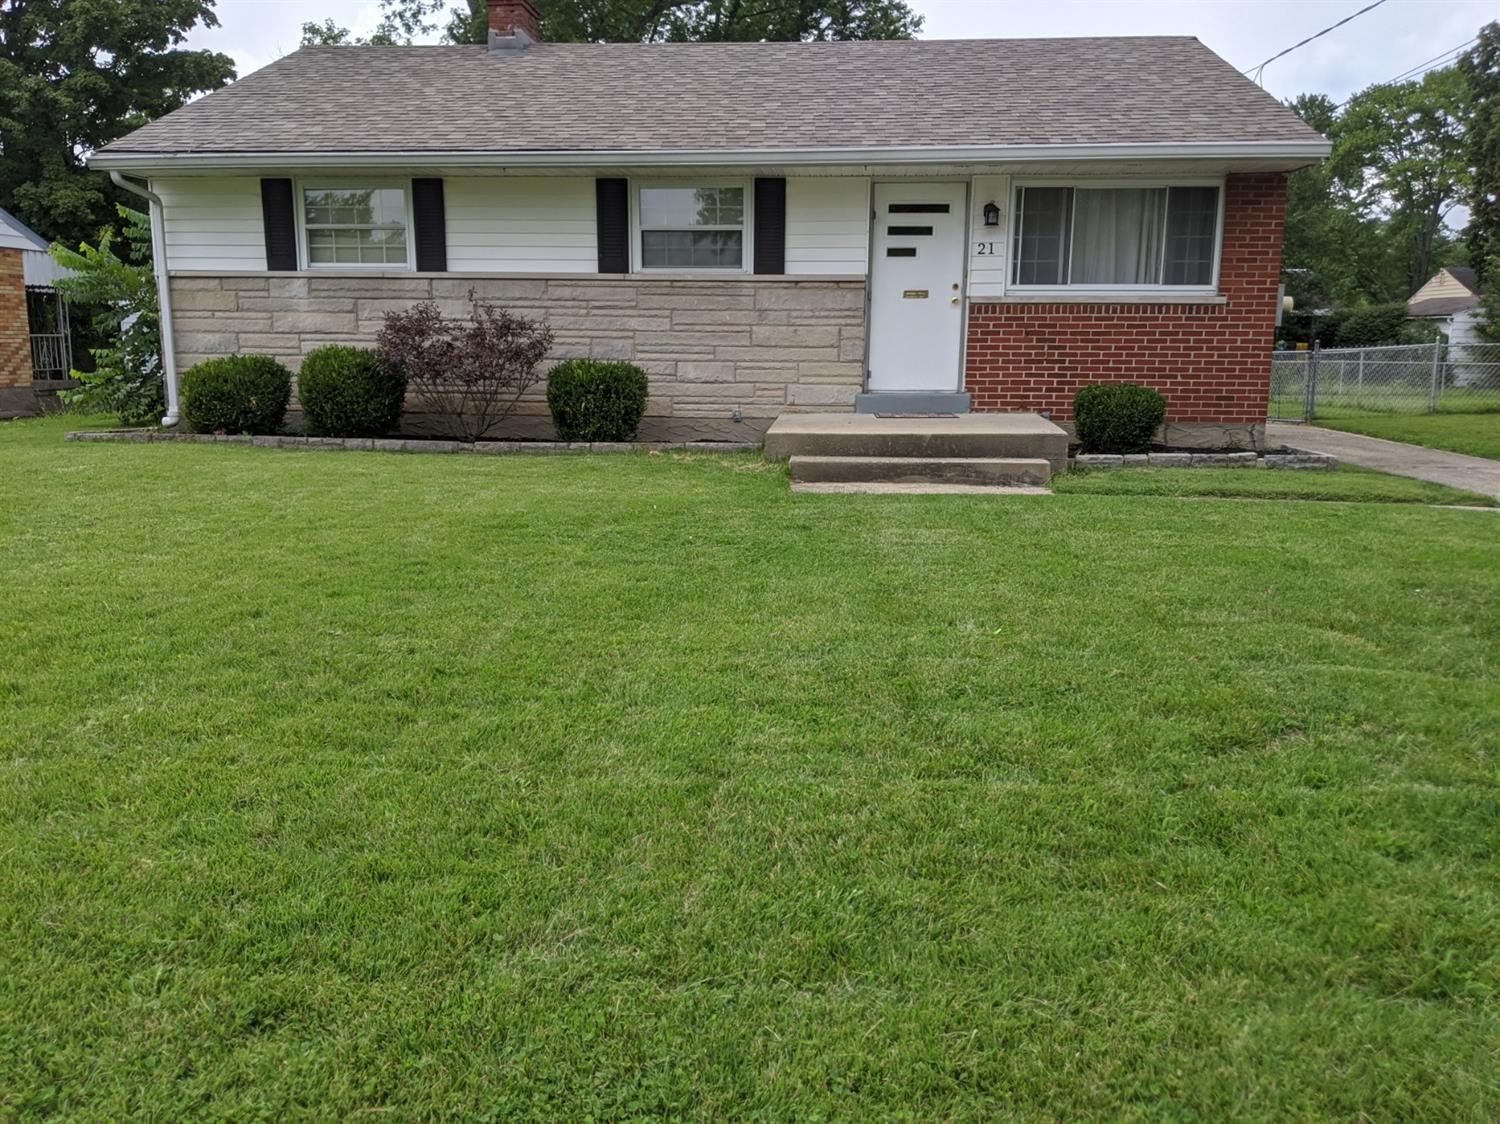 Property for sale at 21 Cemetery Road, Milford,  Ohio 45150